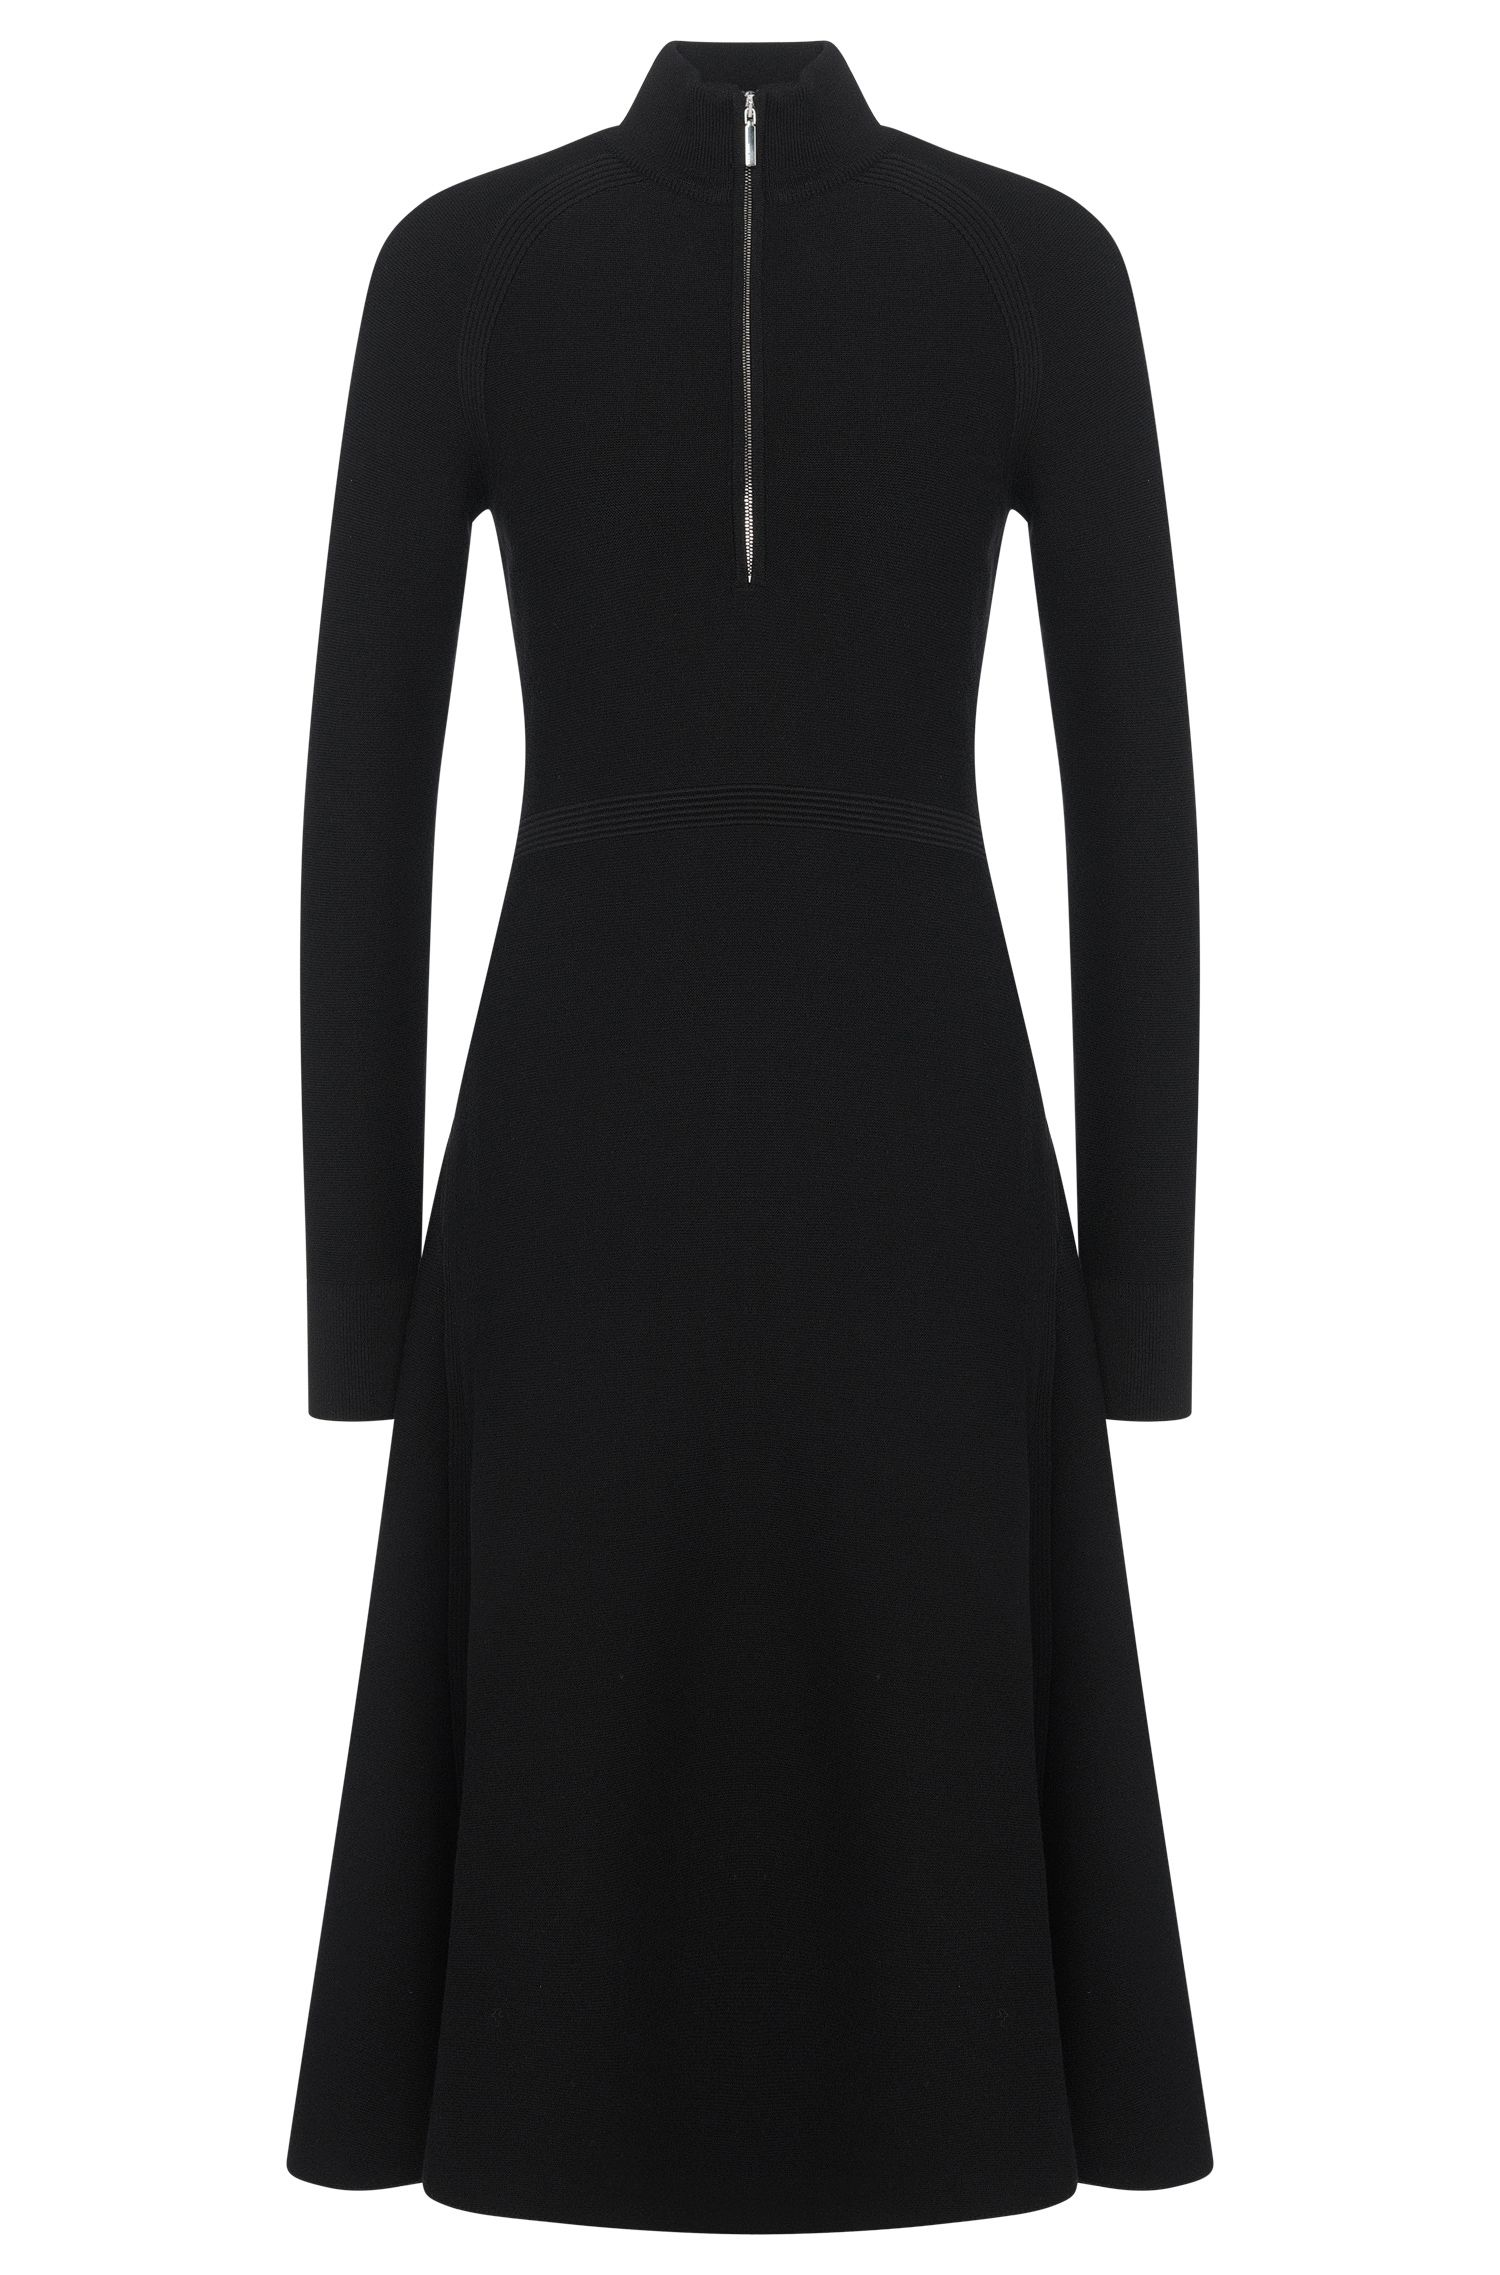 Runway Edition knit dress in viscose blend: 'FS_Finanes'